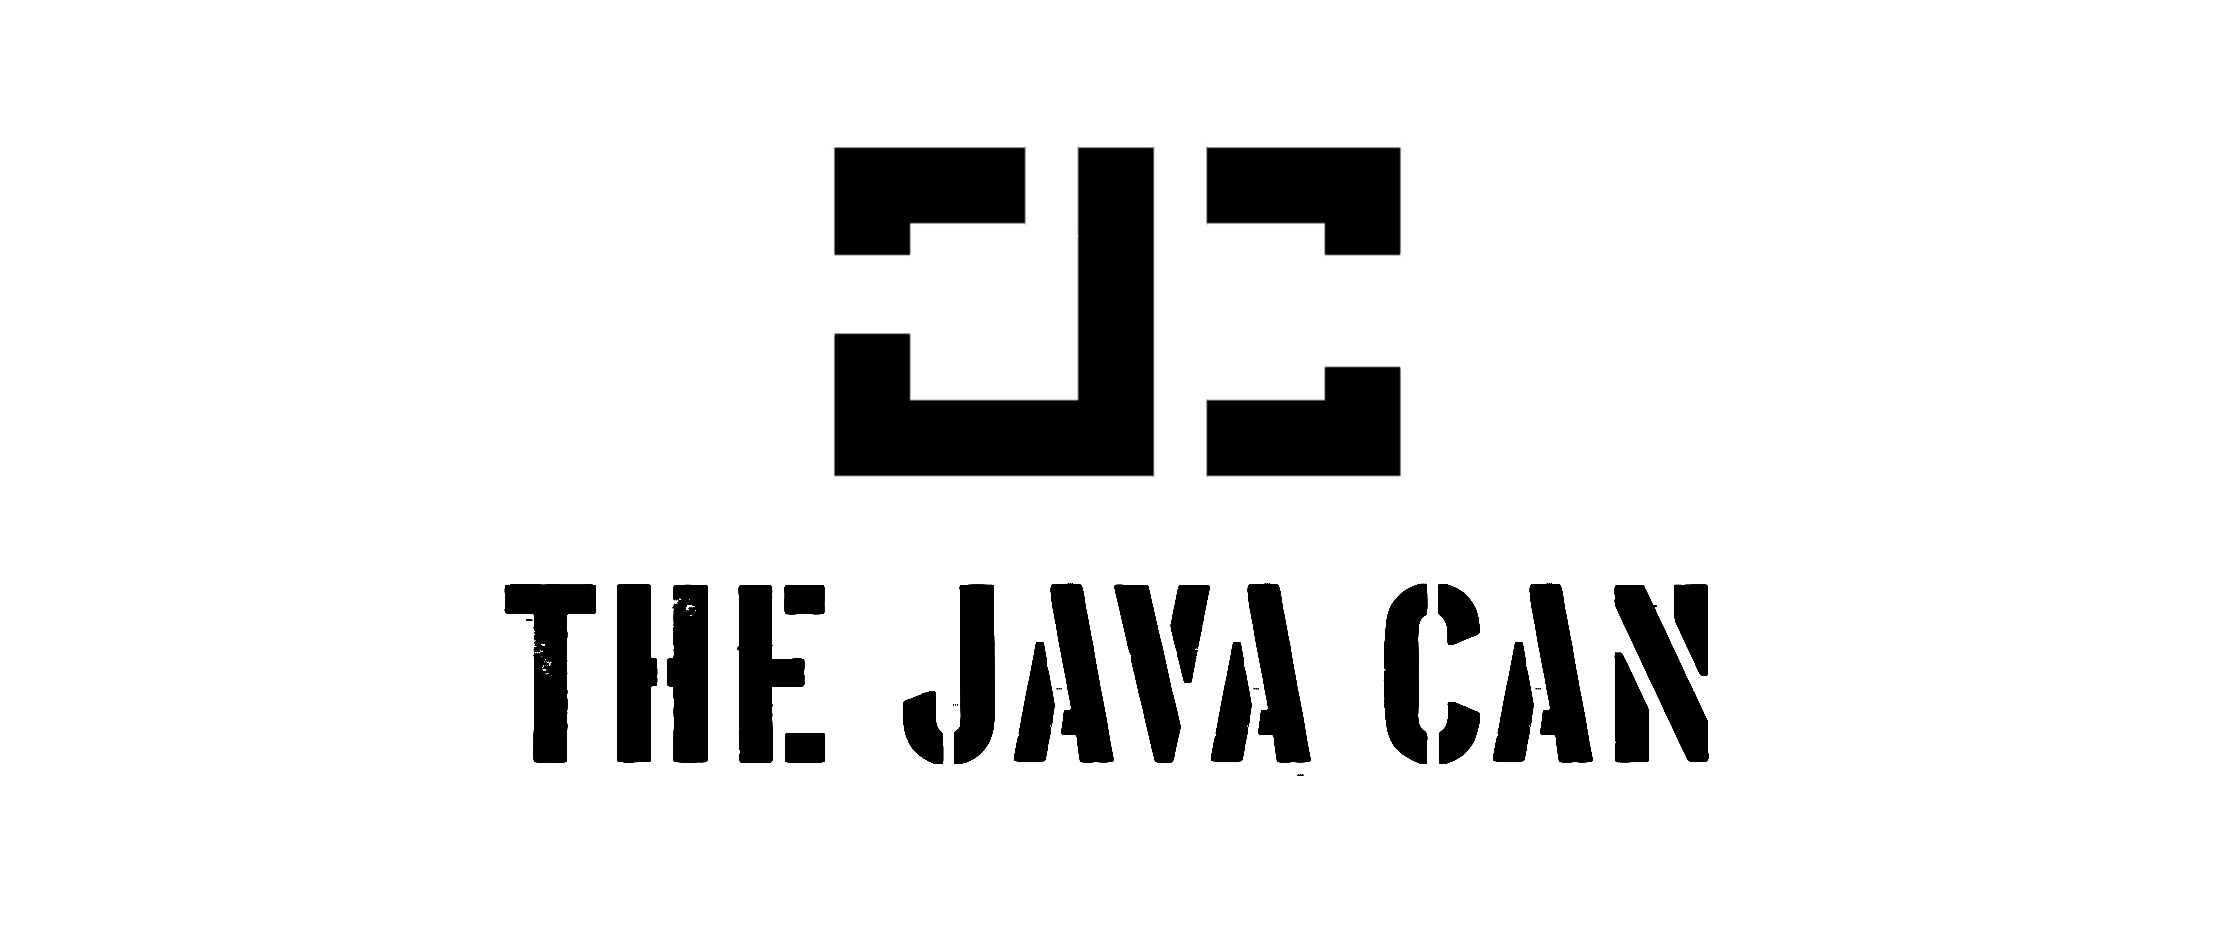 The-Java-Can-Round-1-3.jpg